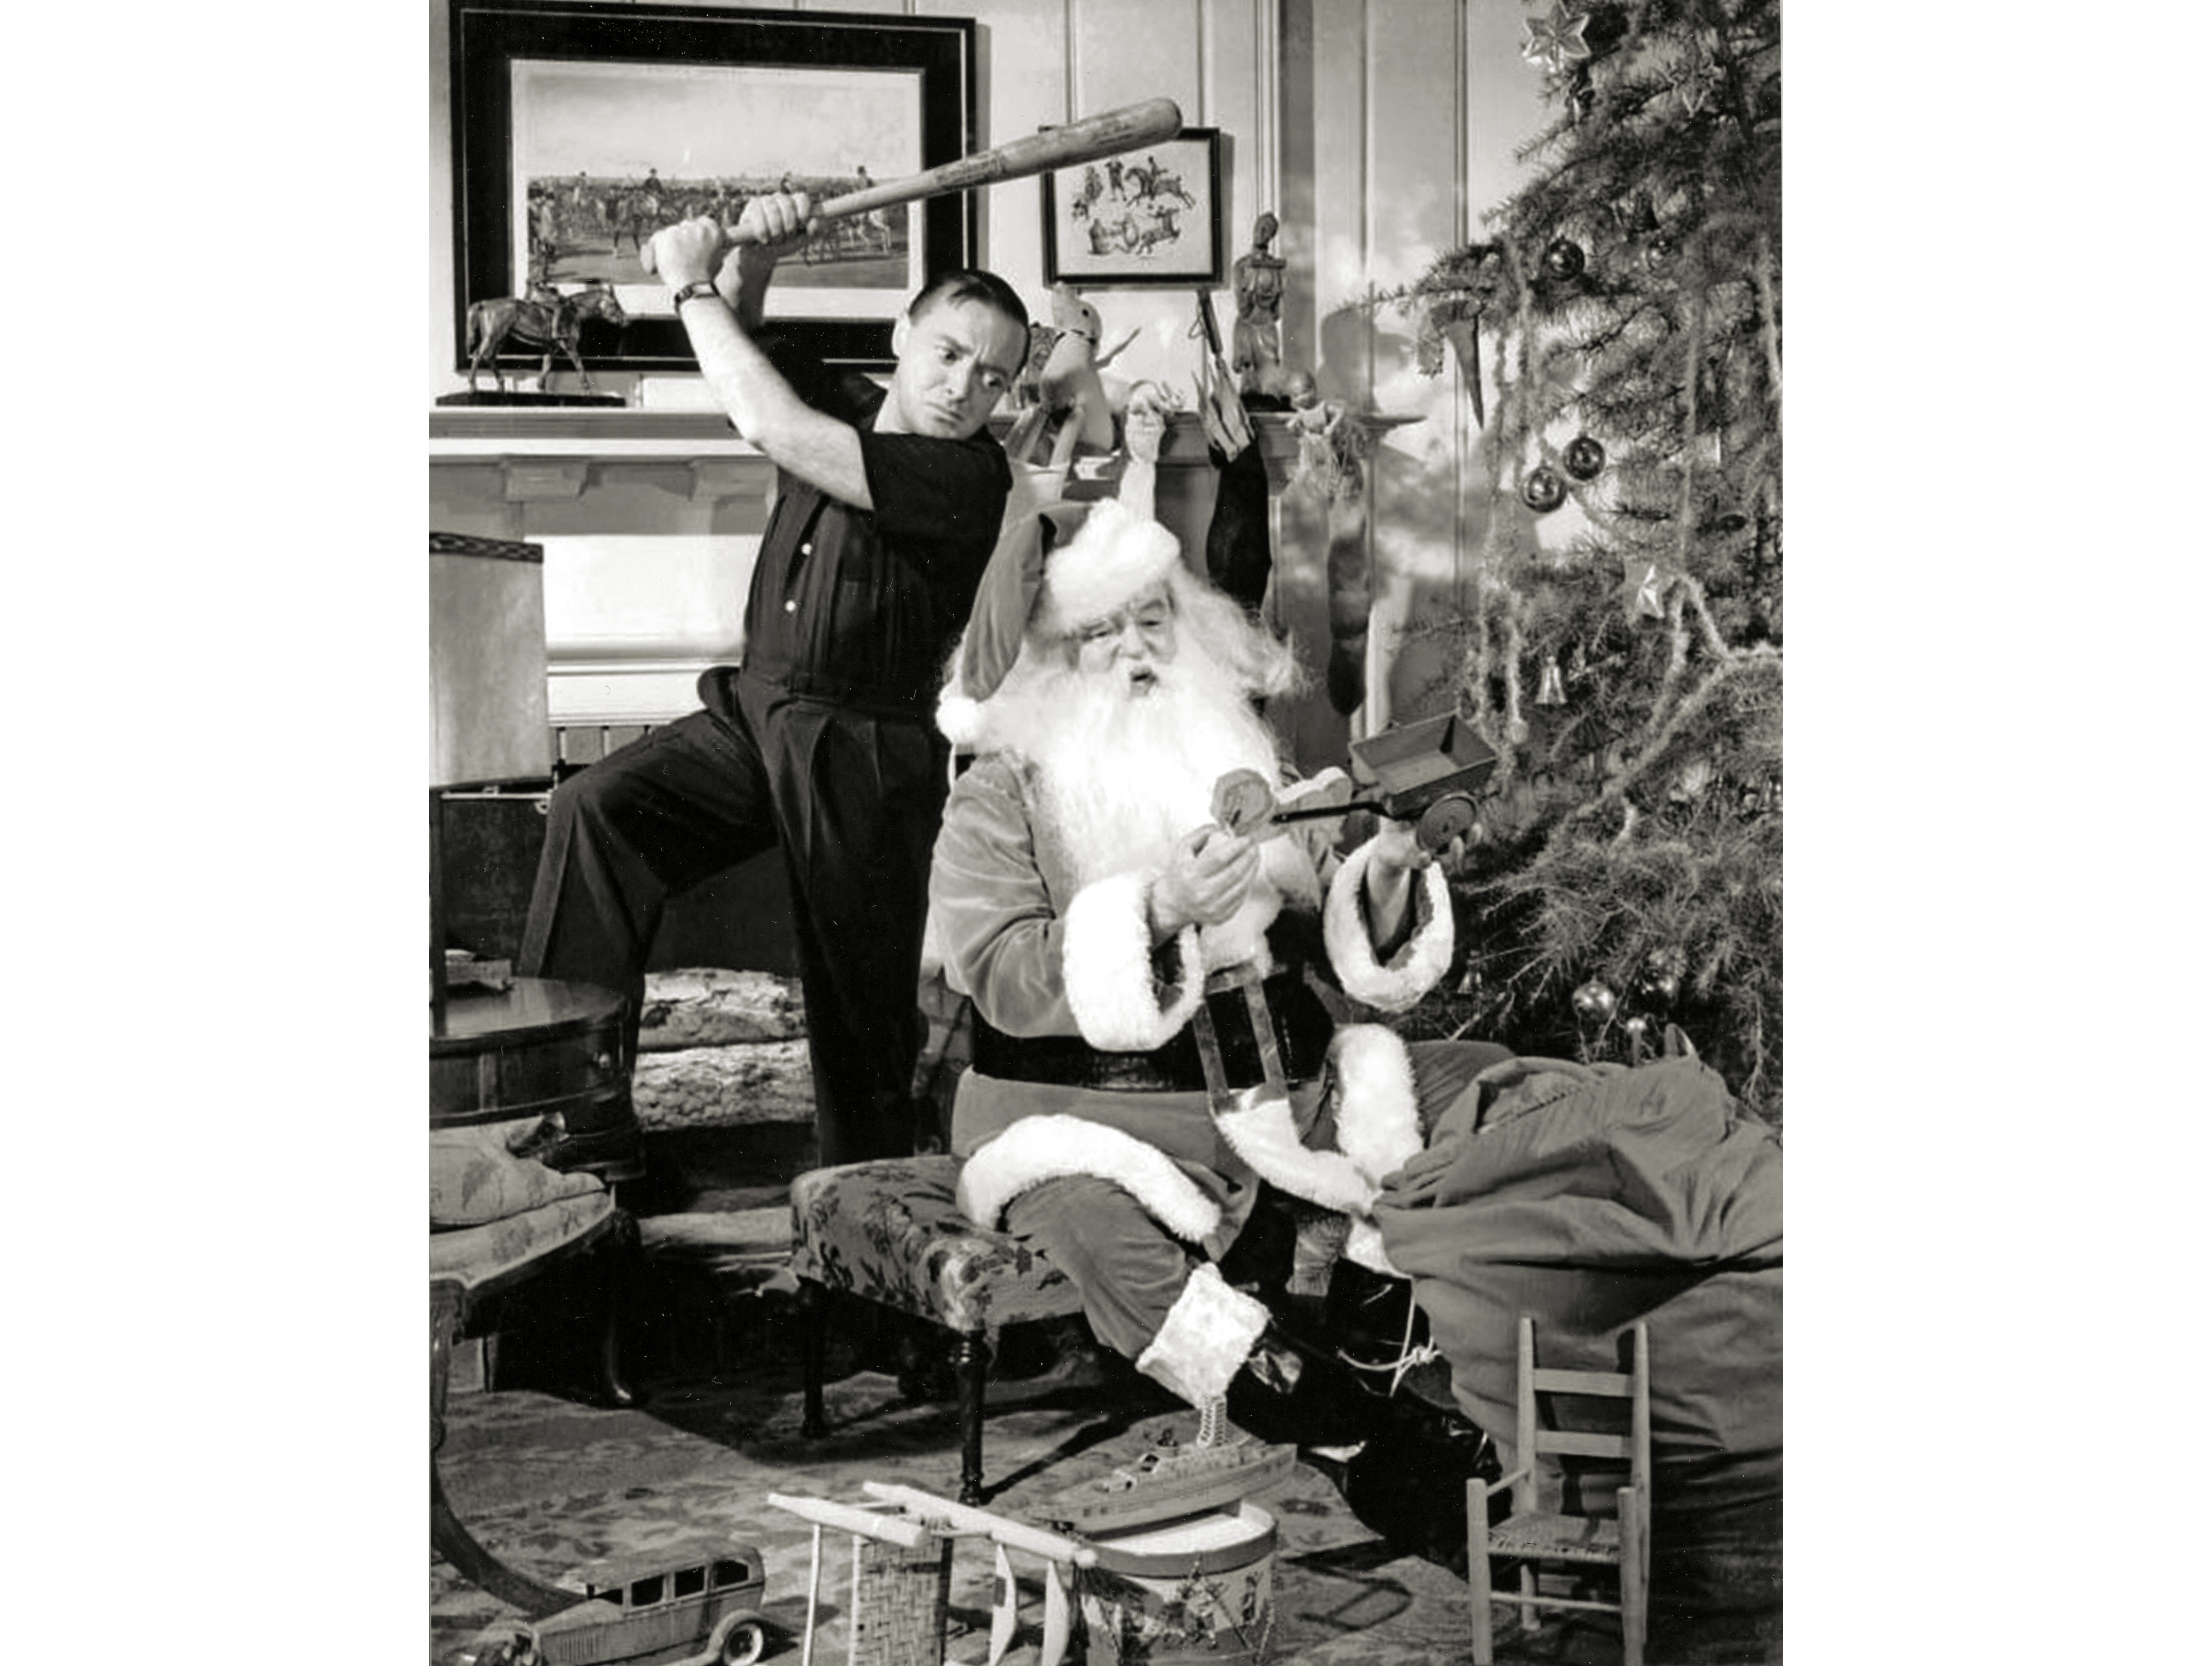 A vicious Peter Lorre prepares to ring in the holidays by swinging at Sydney Greenstreet's gentle Santa Claus.